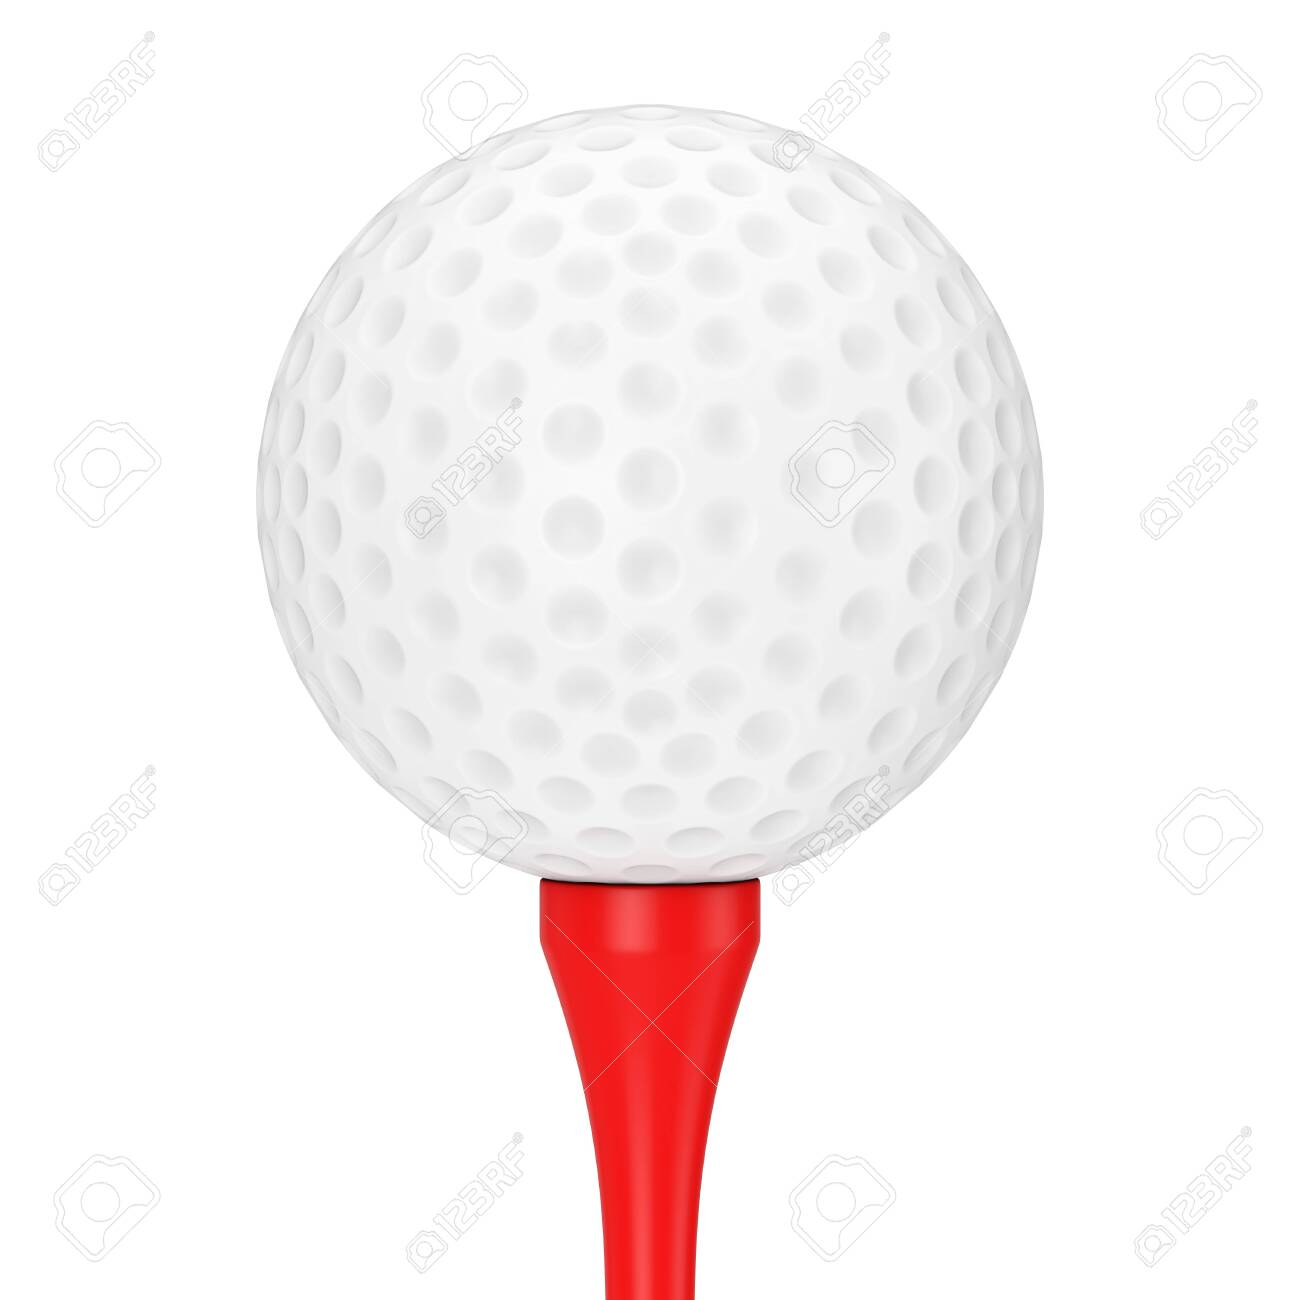 A White Golf Ball on Red Tee on a white background 3d Rendering - 121852042